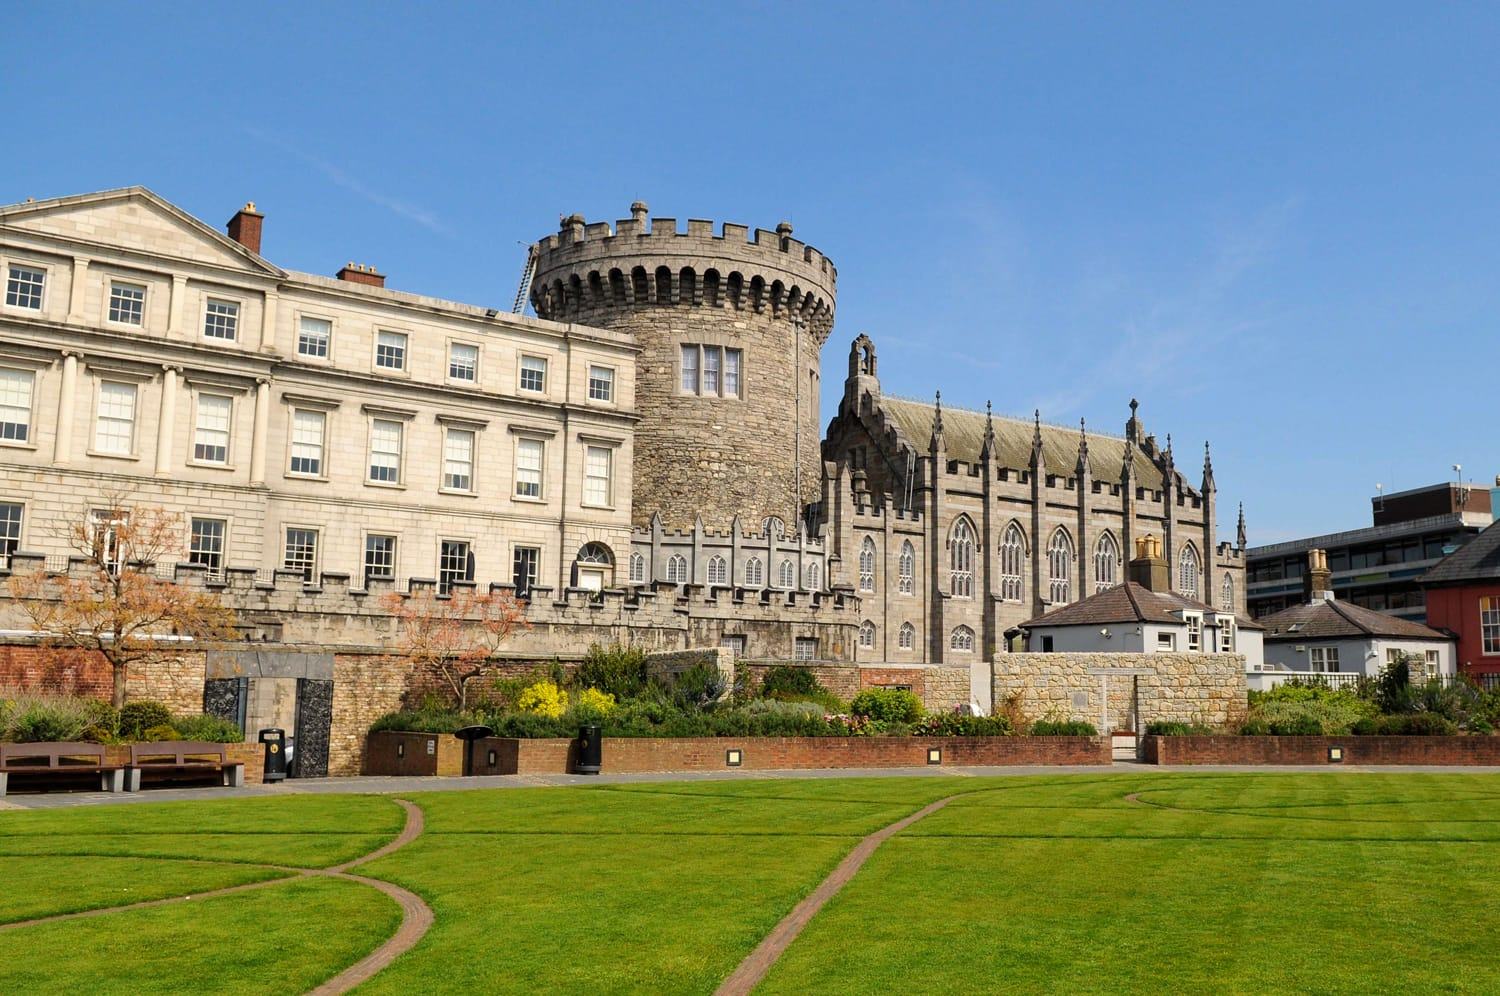 Dublin Castle from Dubh Linn gardens on a sunny spring day, Dublin, Ireland